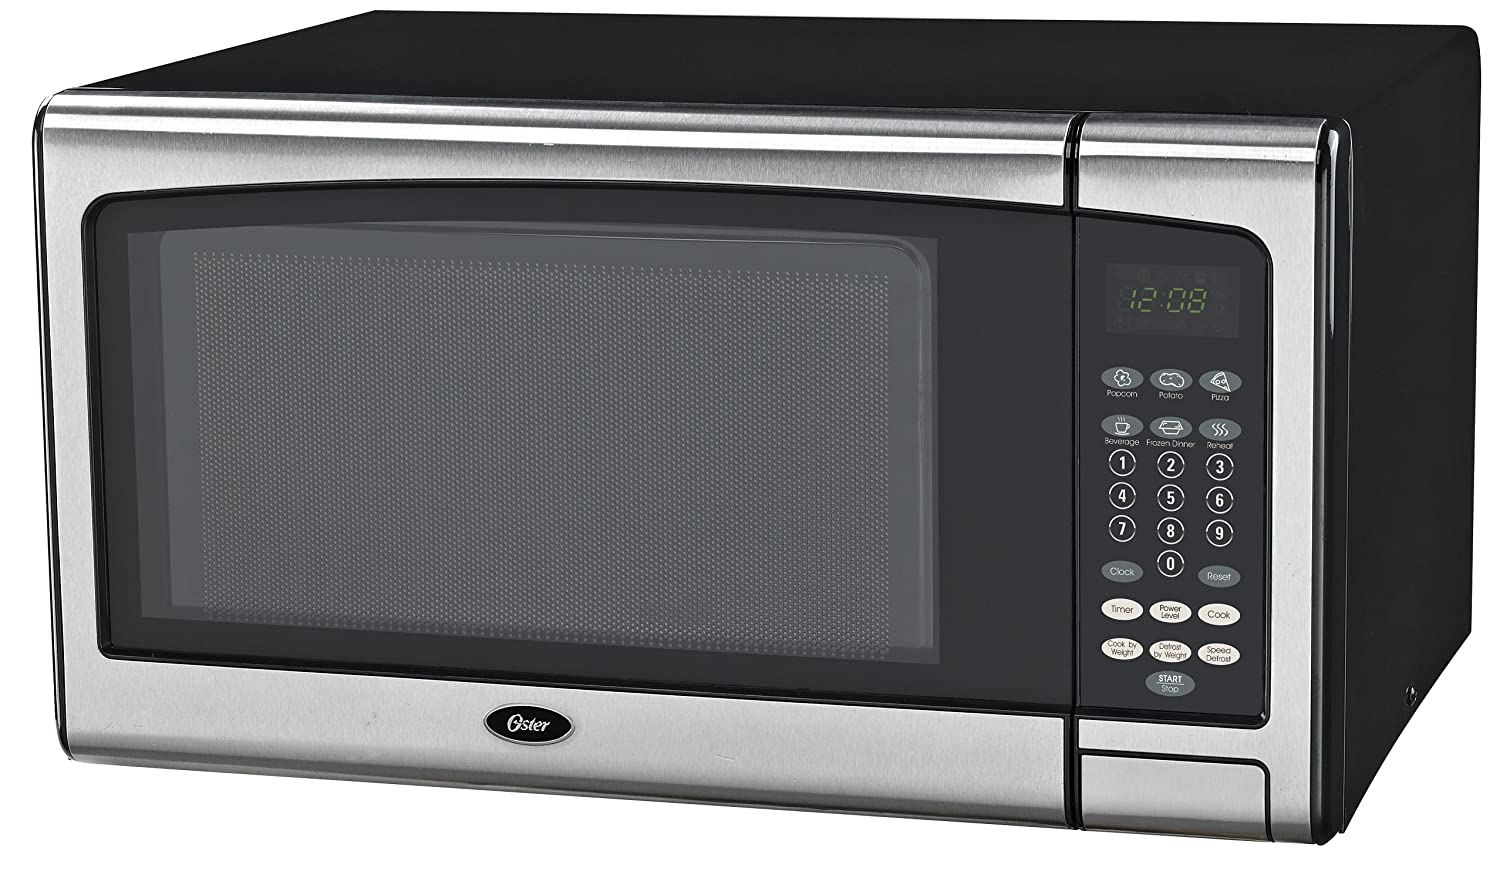 Oster OGSMJ411S2-10 1.1 cu. Ft. Microwave Oven, Stainless Steel Galanz America